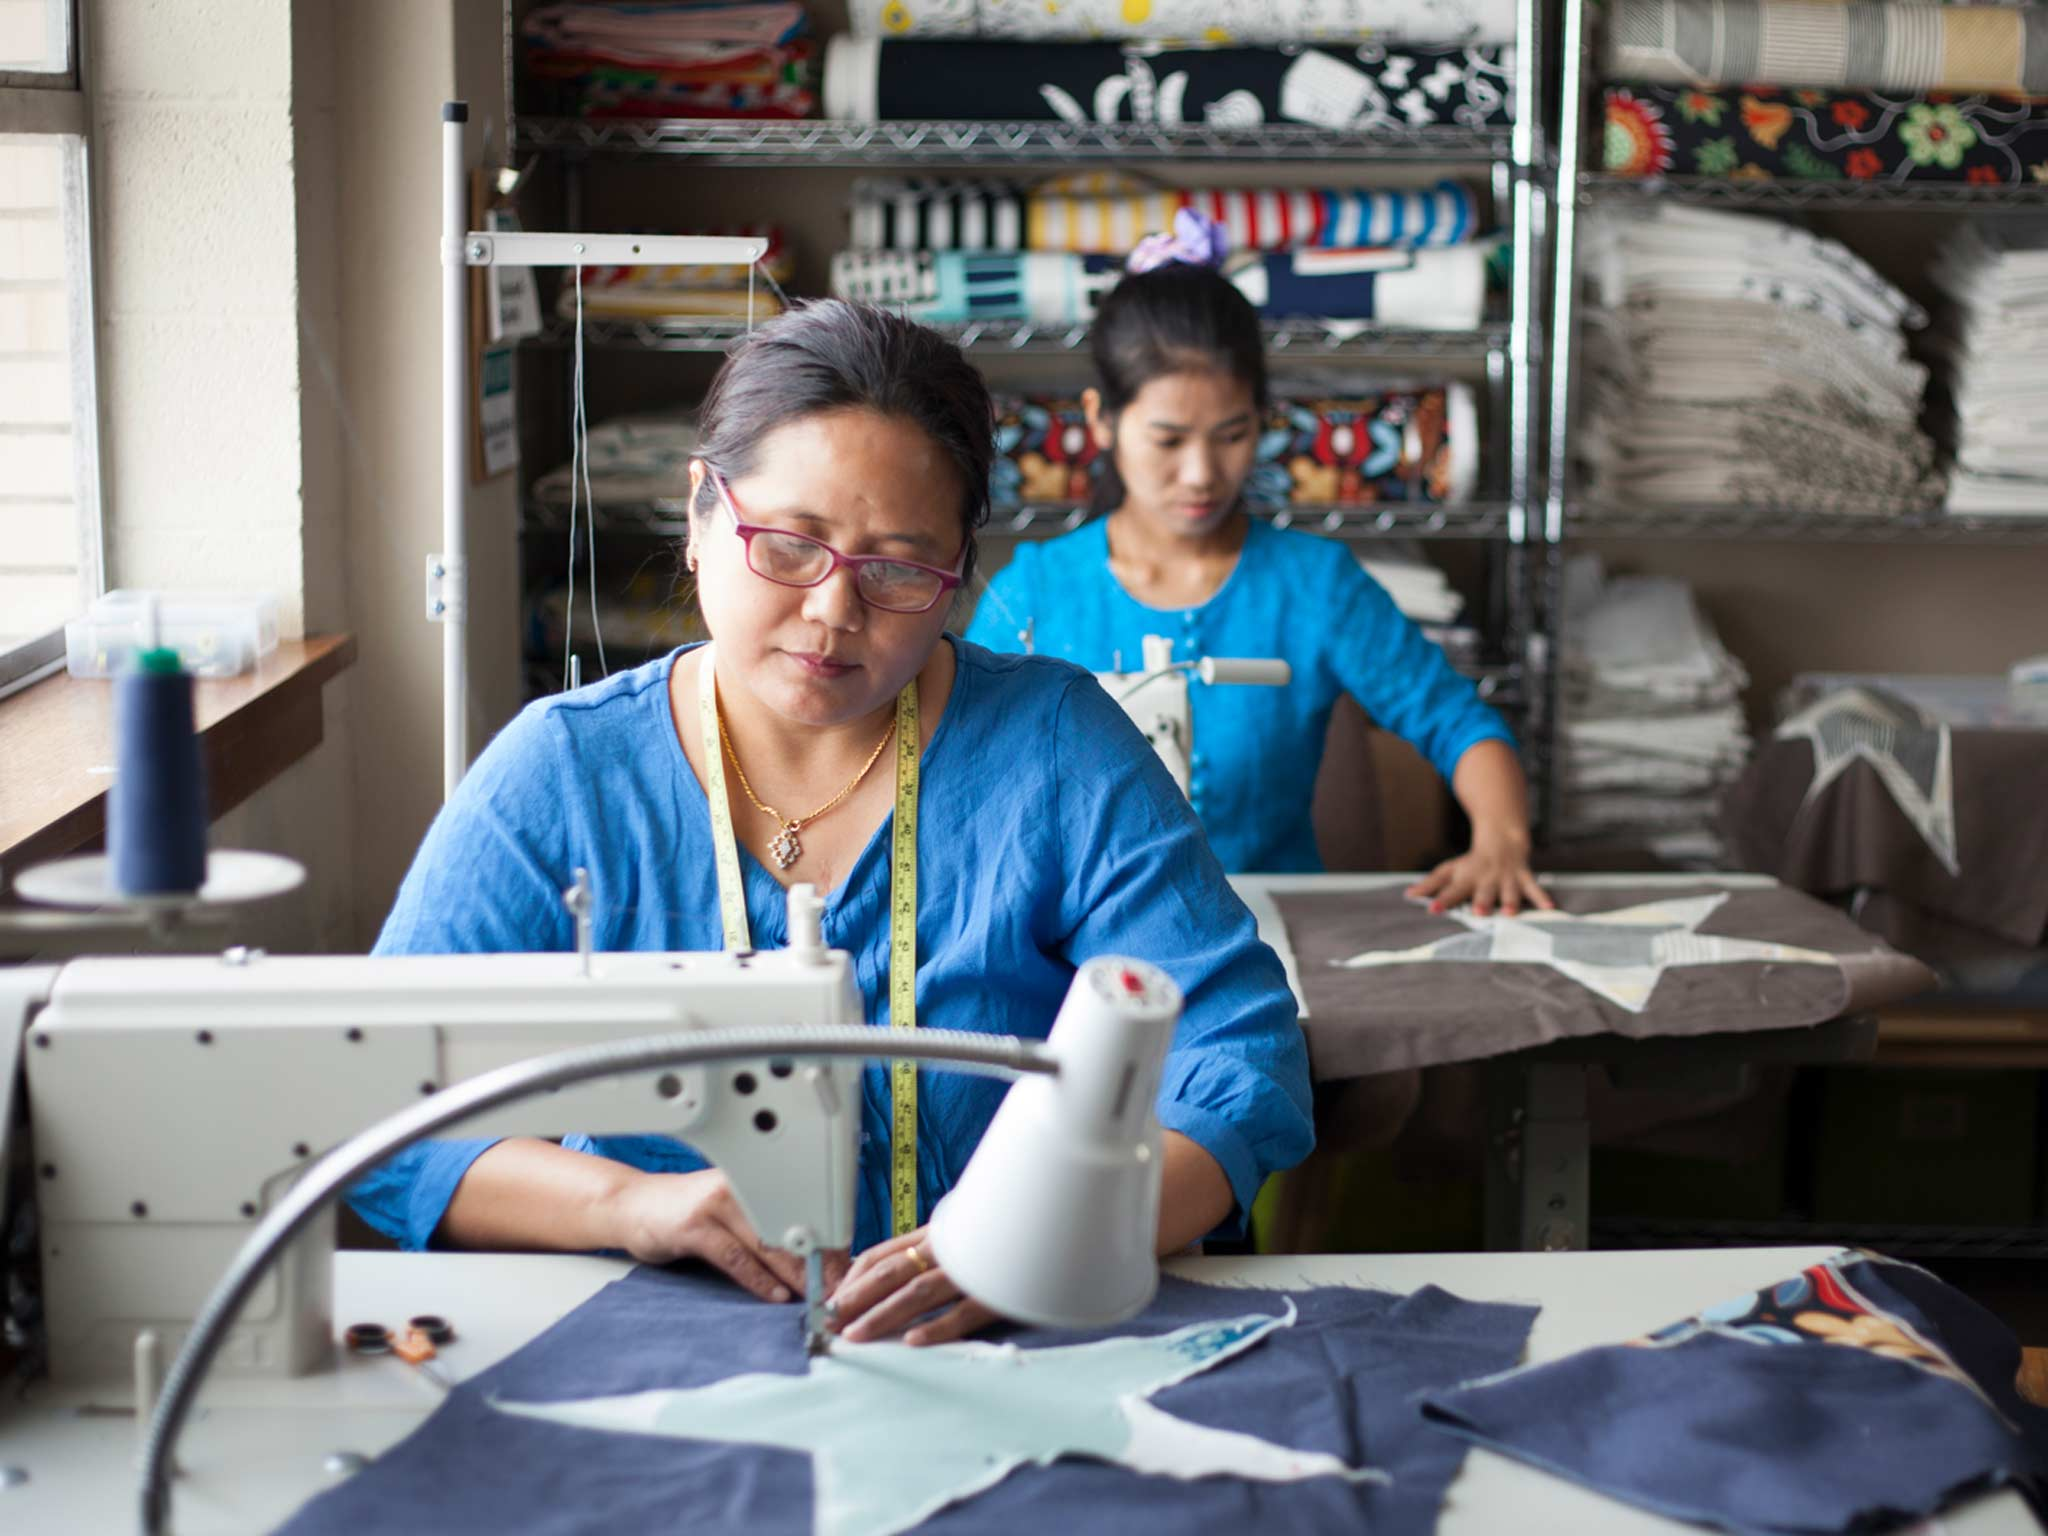 Open Arms is a social entrepreneur in Texas that offers refugee women employment. Thang Zuali turns leftover IKEA fabric into new products.